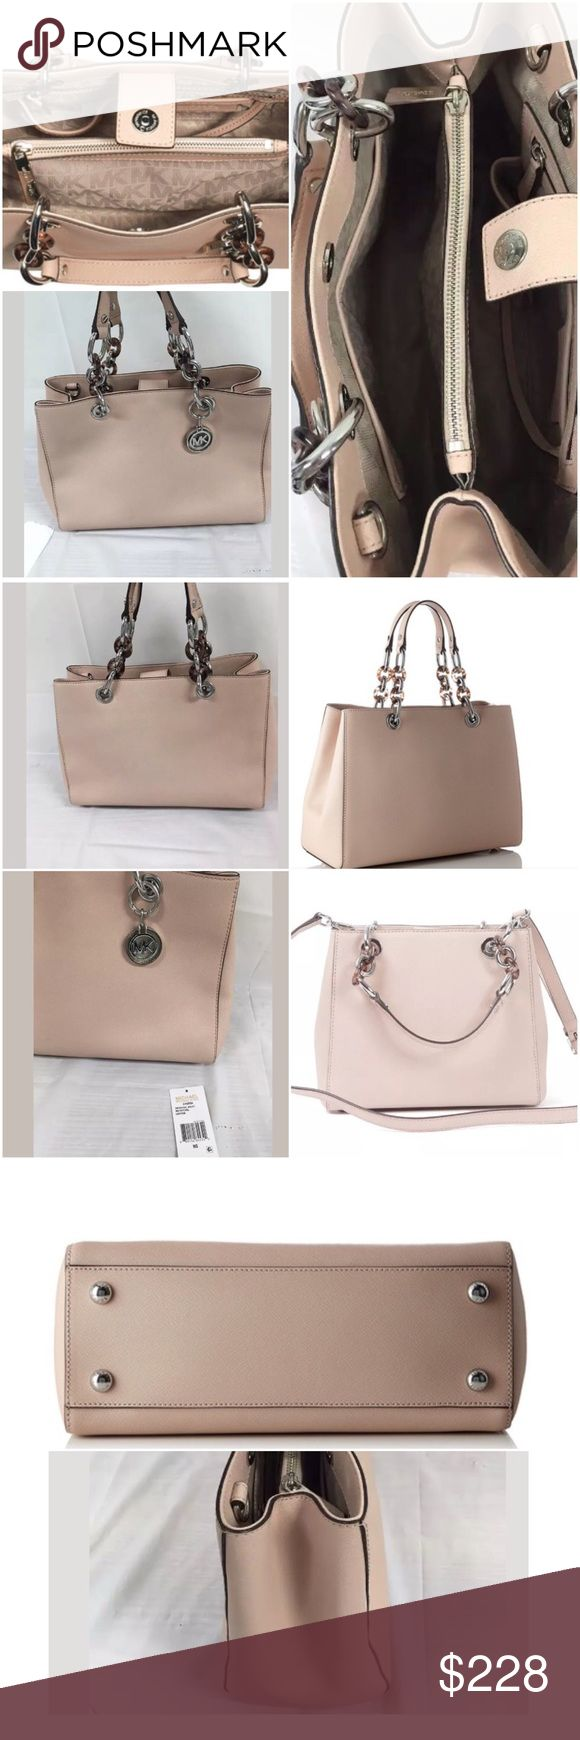 💝MK Cynthia Saffiano leather~Ballet Authenic Brand new, removable strap for crossbody. Medium size. Beautifully ballet color with silver hard wear. Lower in 🅿️🅿️ Michael Kors Bags Satchels